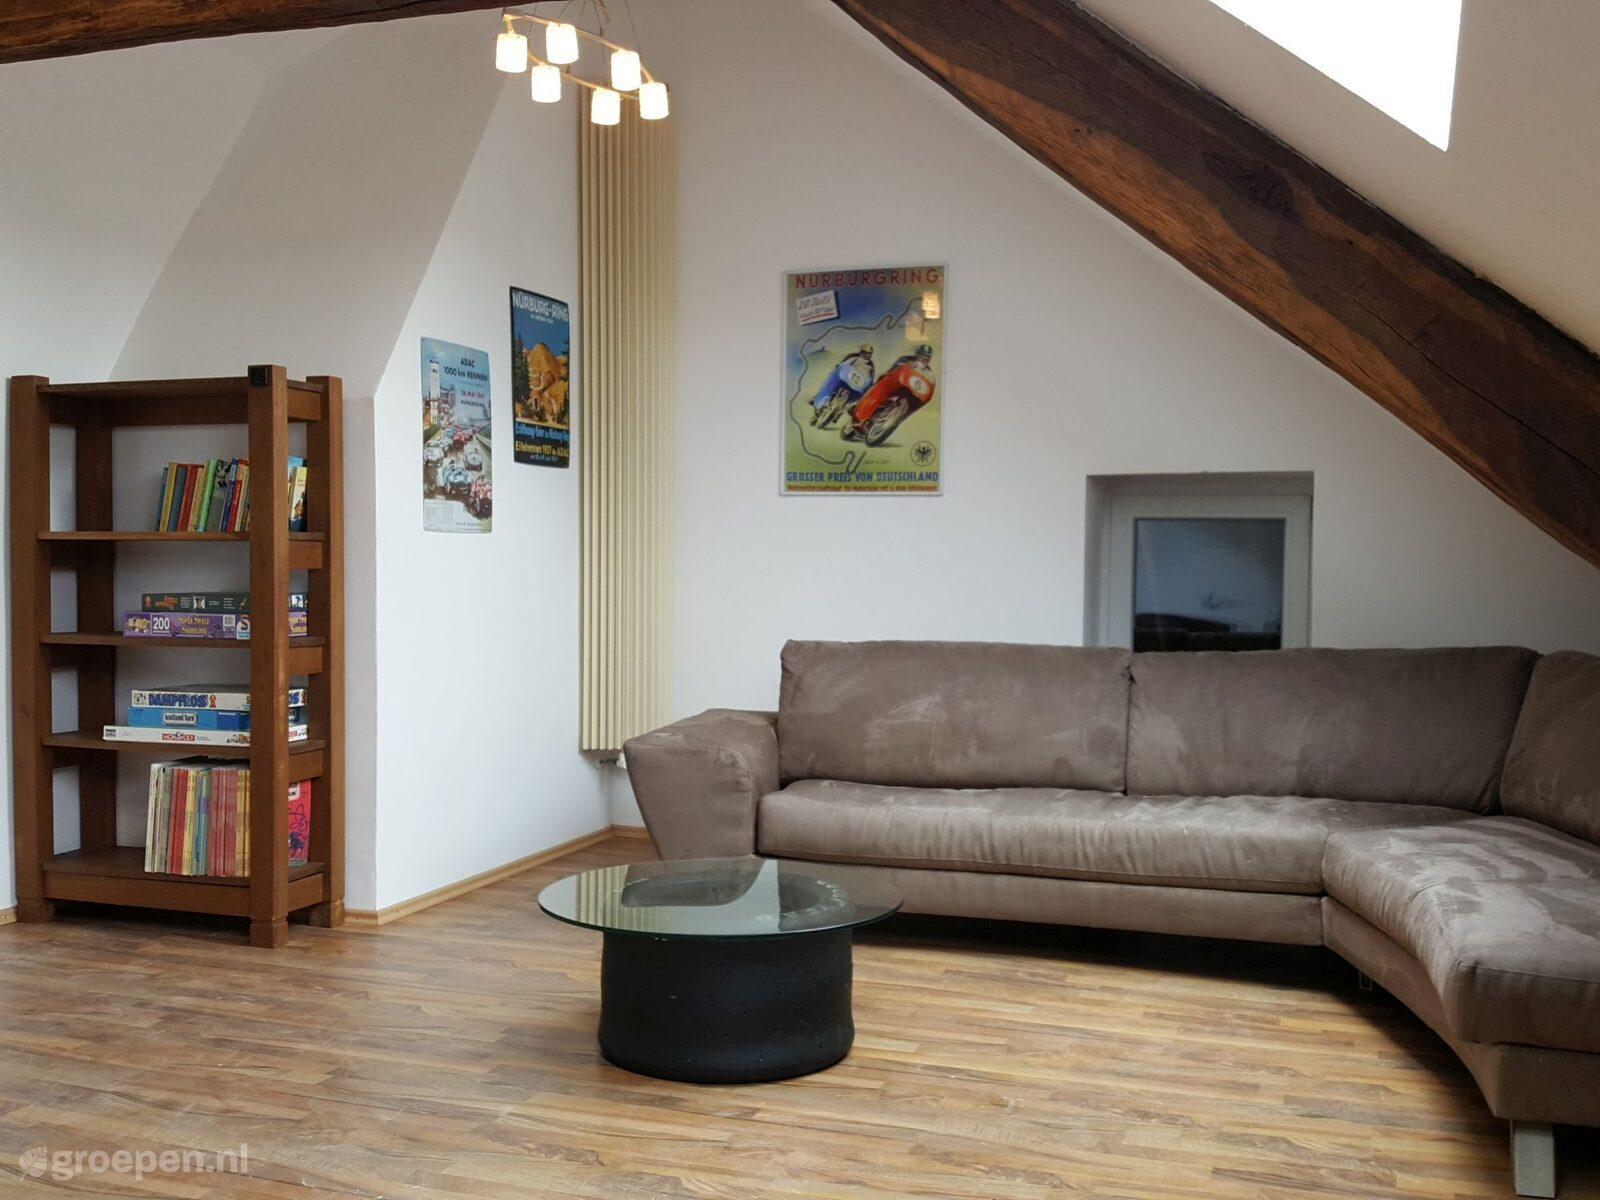 Group accommodation Rodershausen